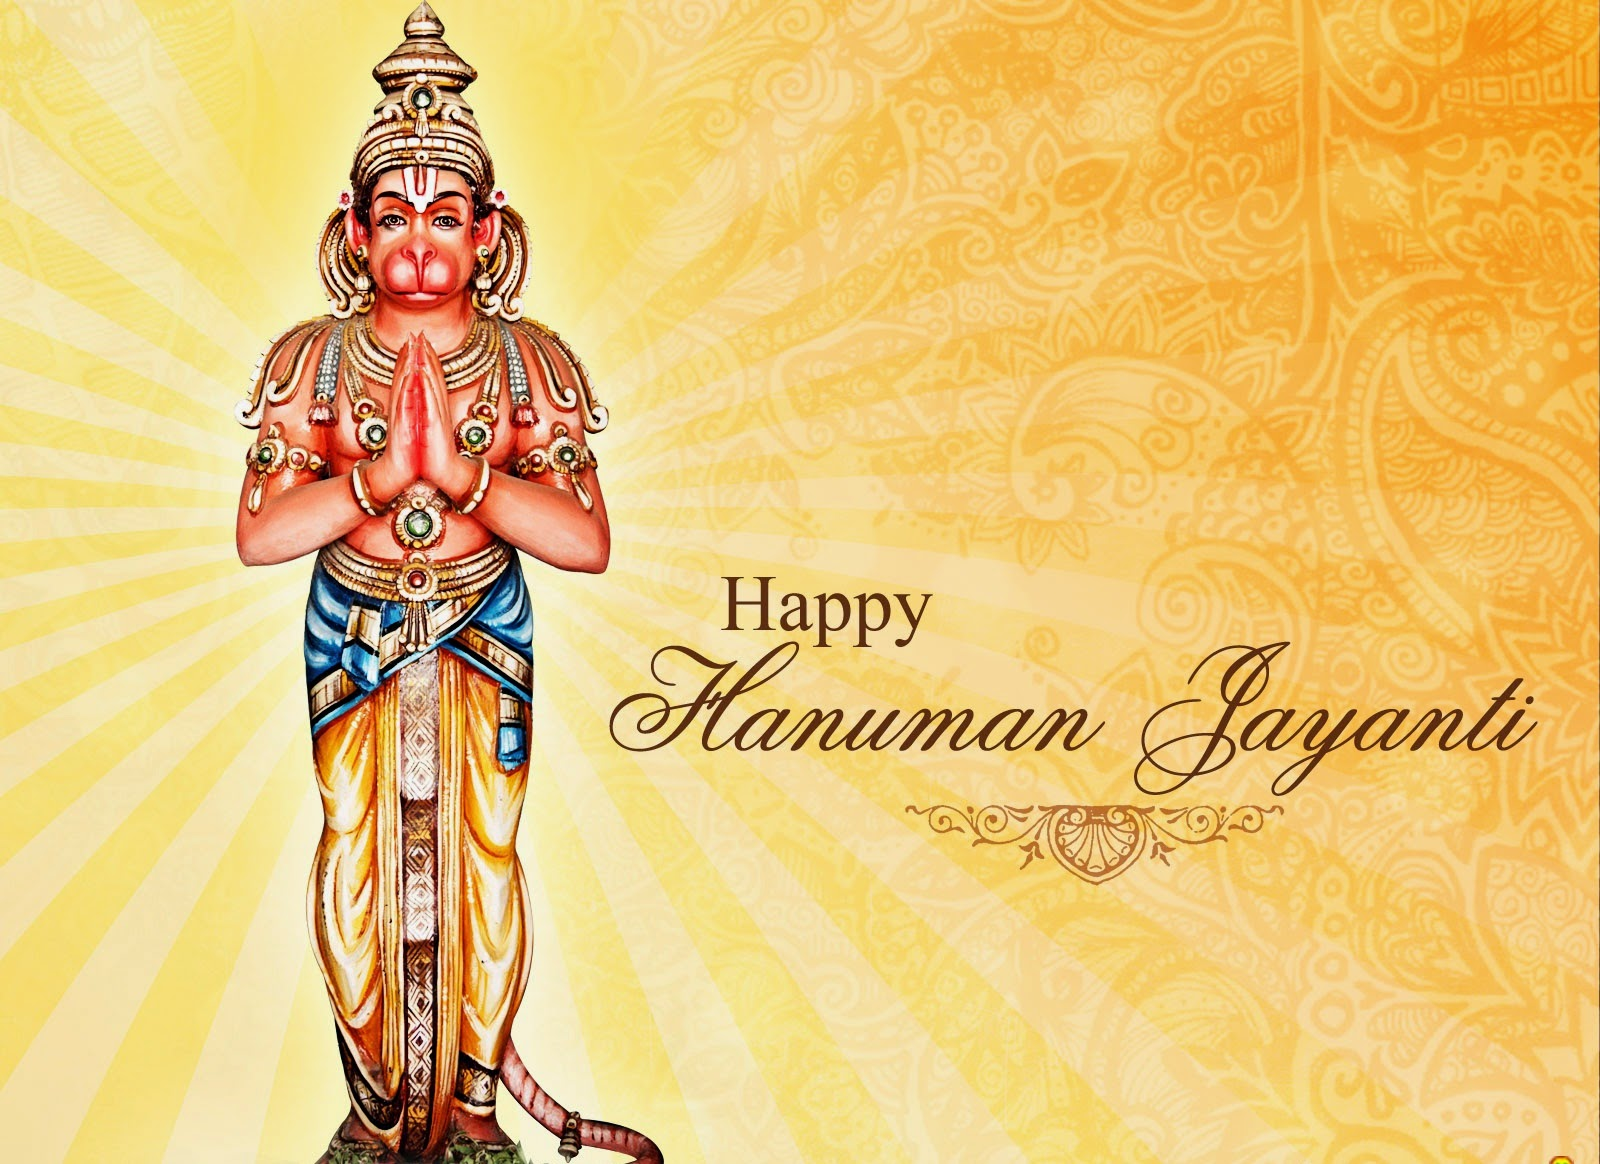 Happy Hanuman Jayanti Bajrangbalee Free Download HD Photos